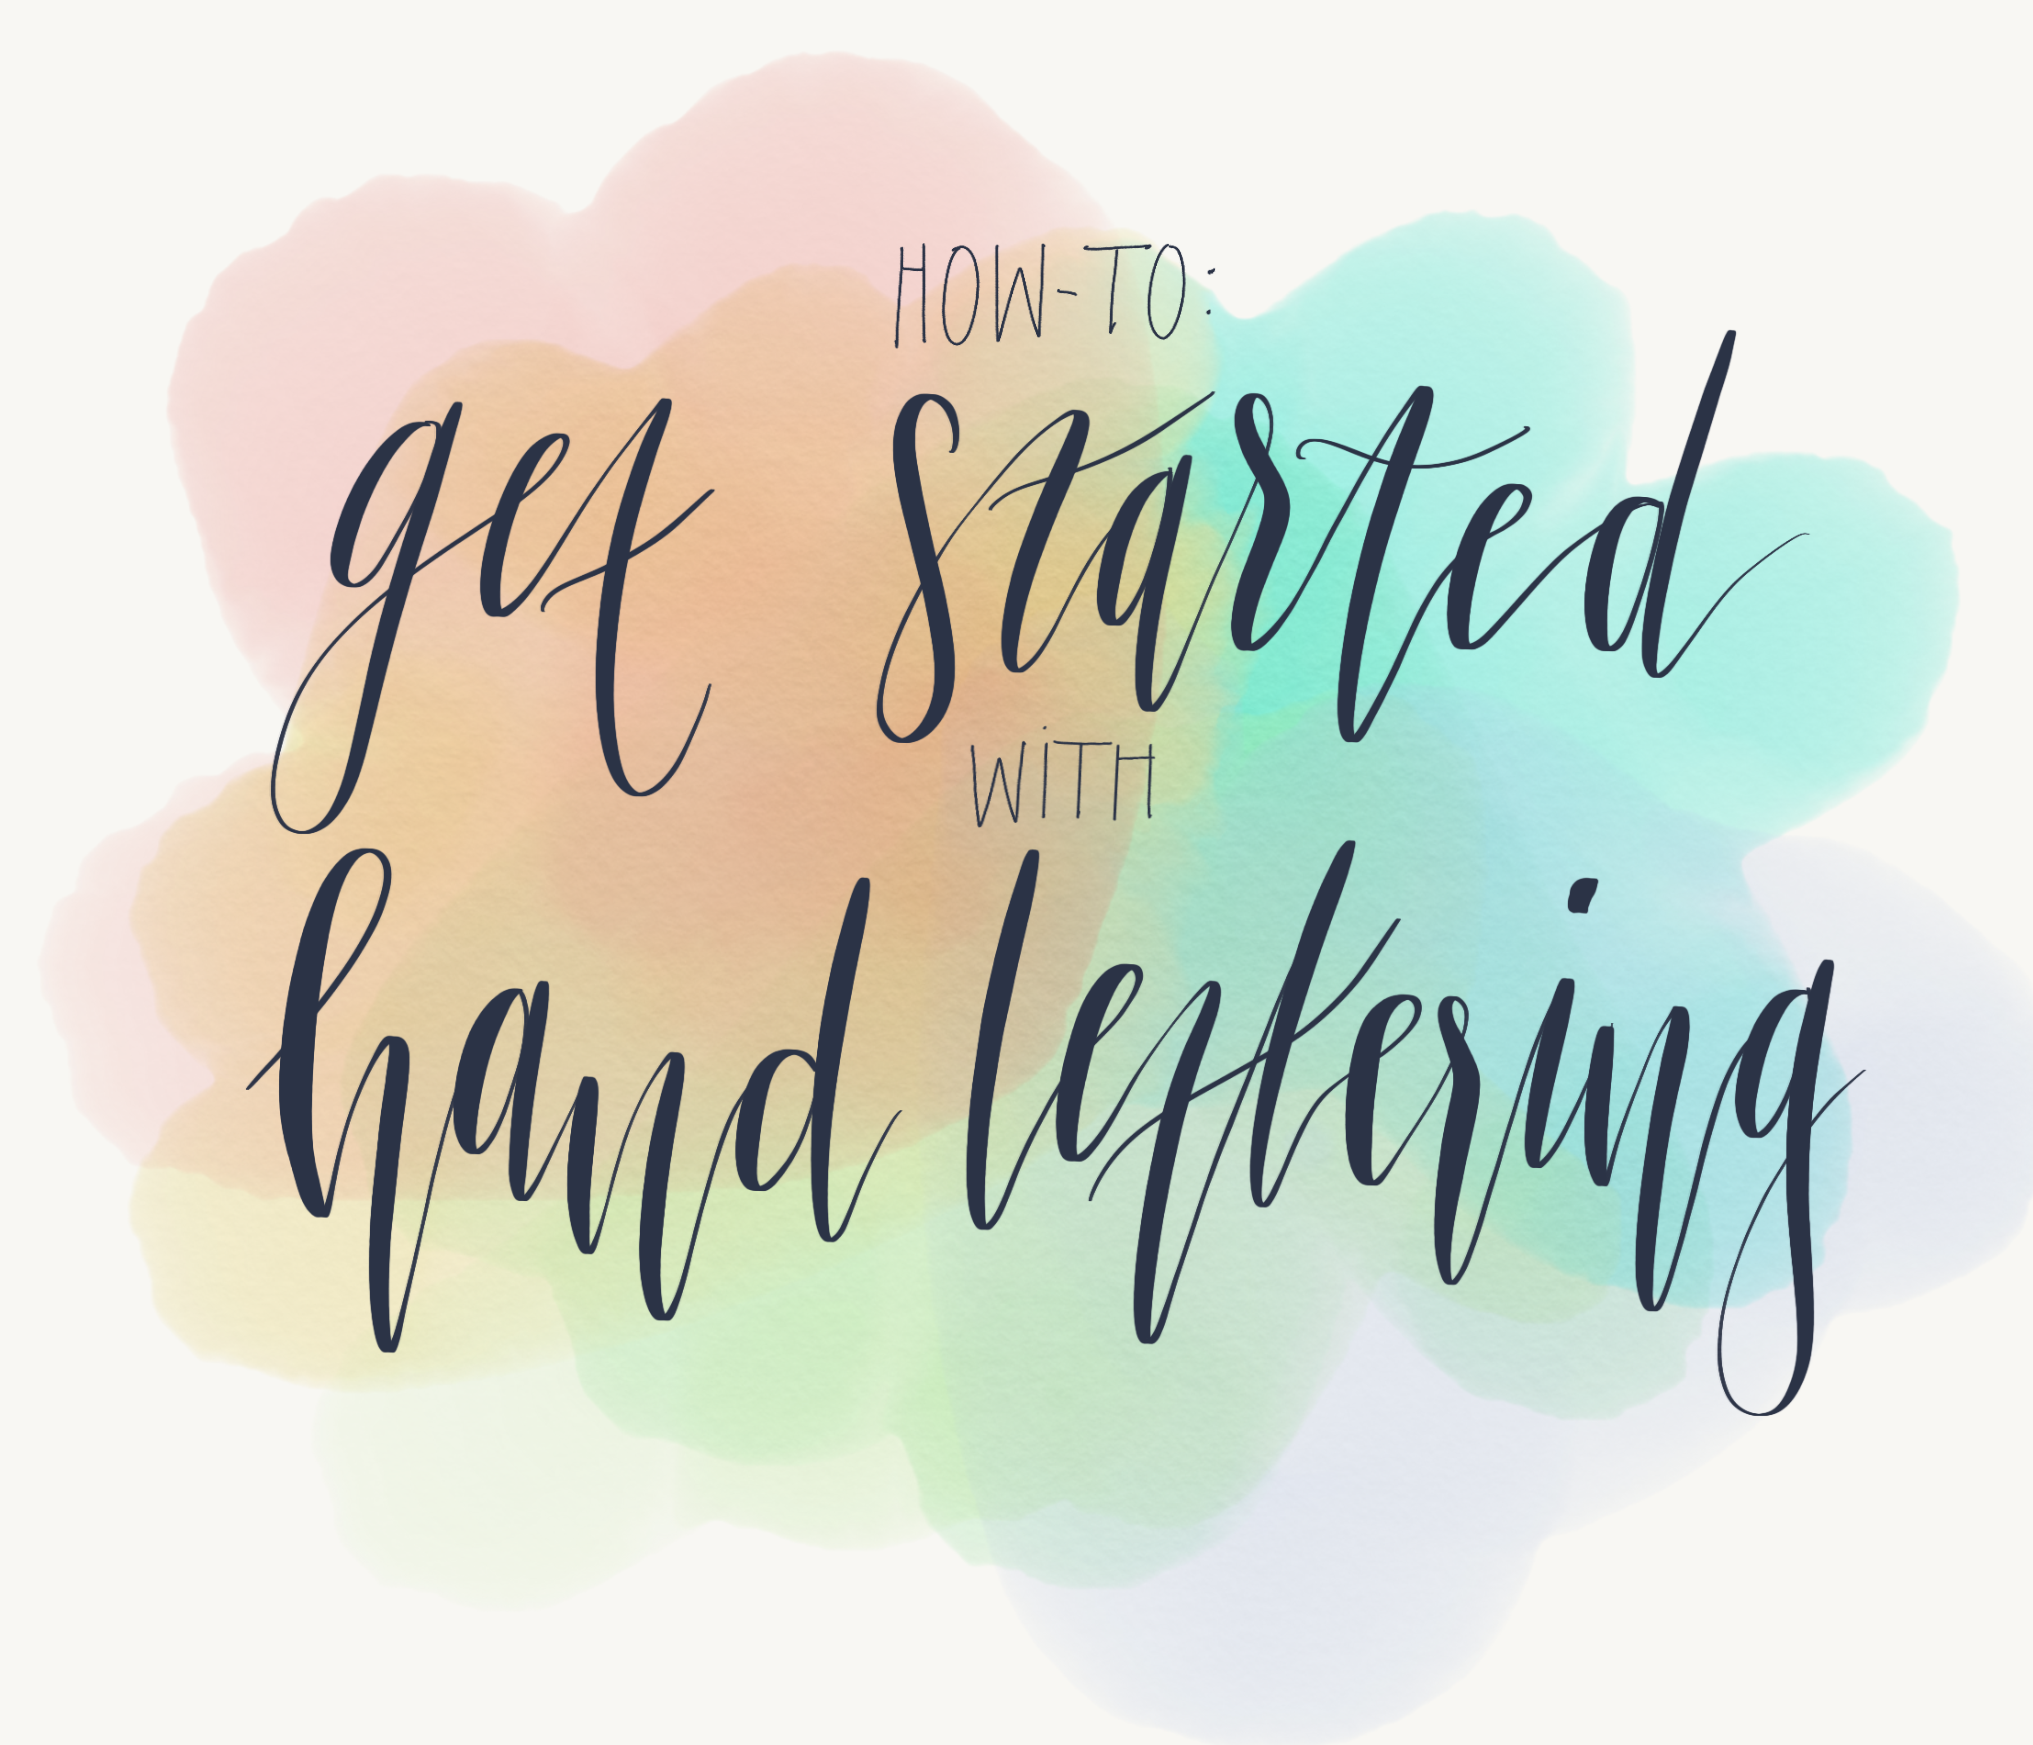 b54c68ece96 How to get started with hand-lettering – Cat Noone – Medium